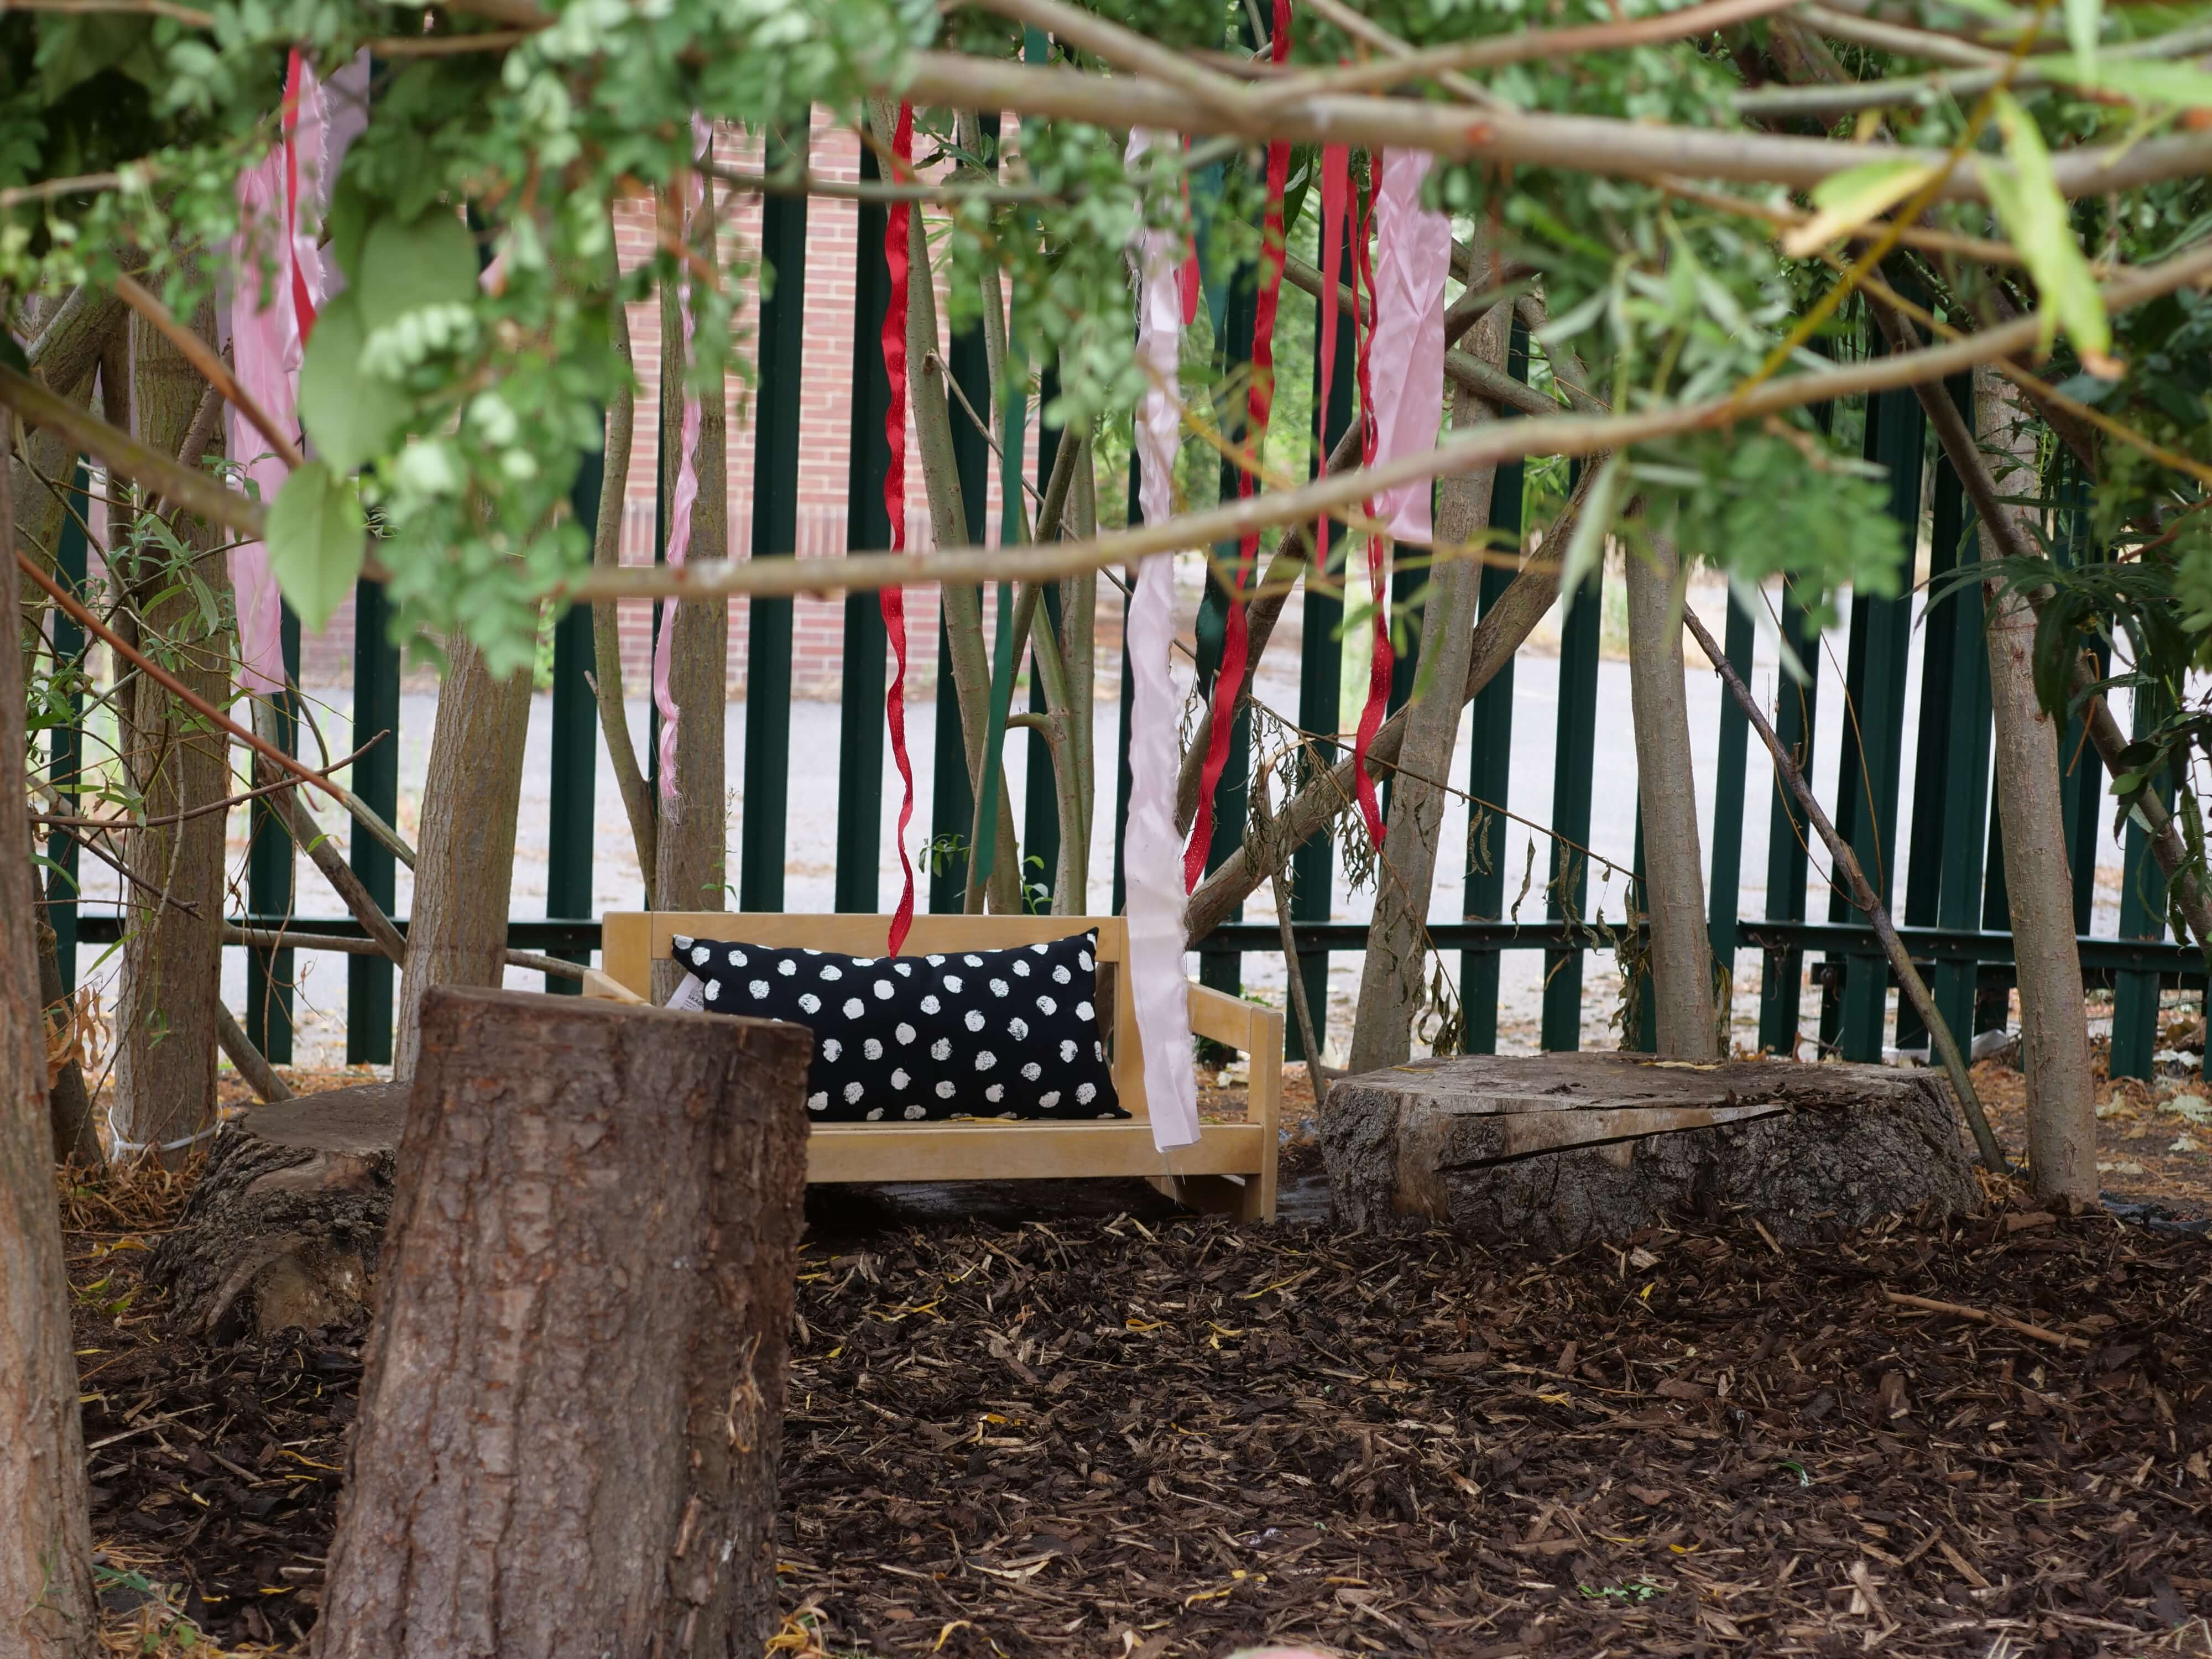 Derwent Stepping Stones Childcare forest garden with ribbon streamers and wooden bench